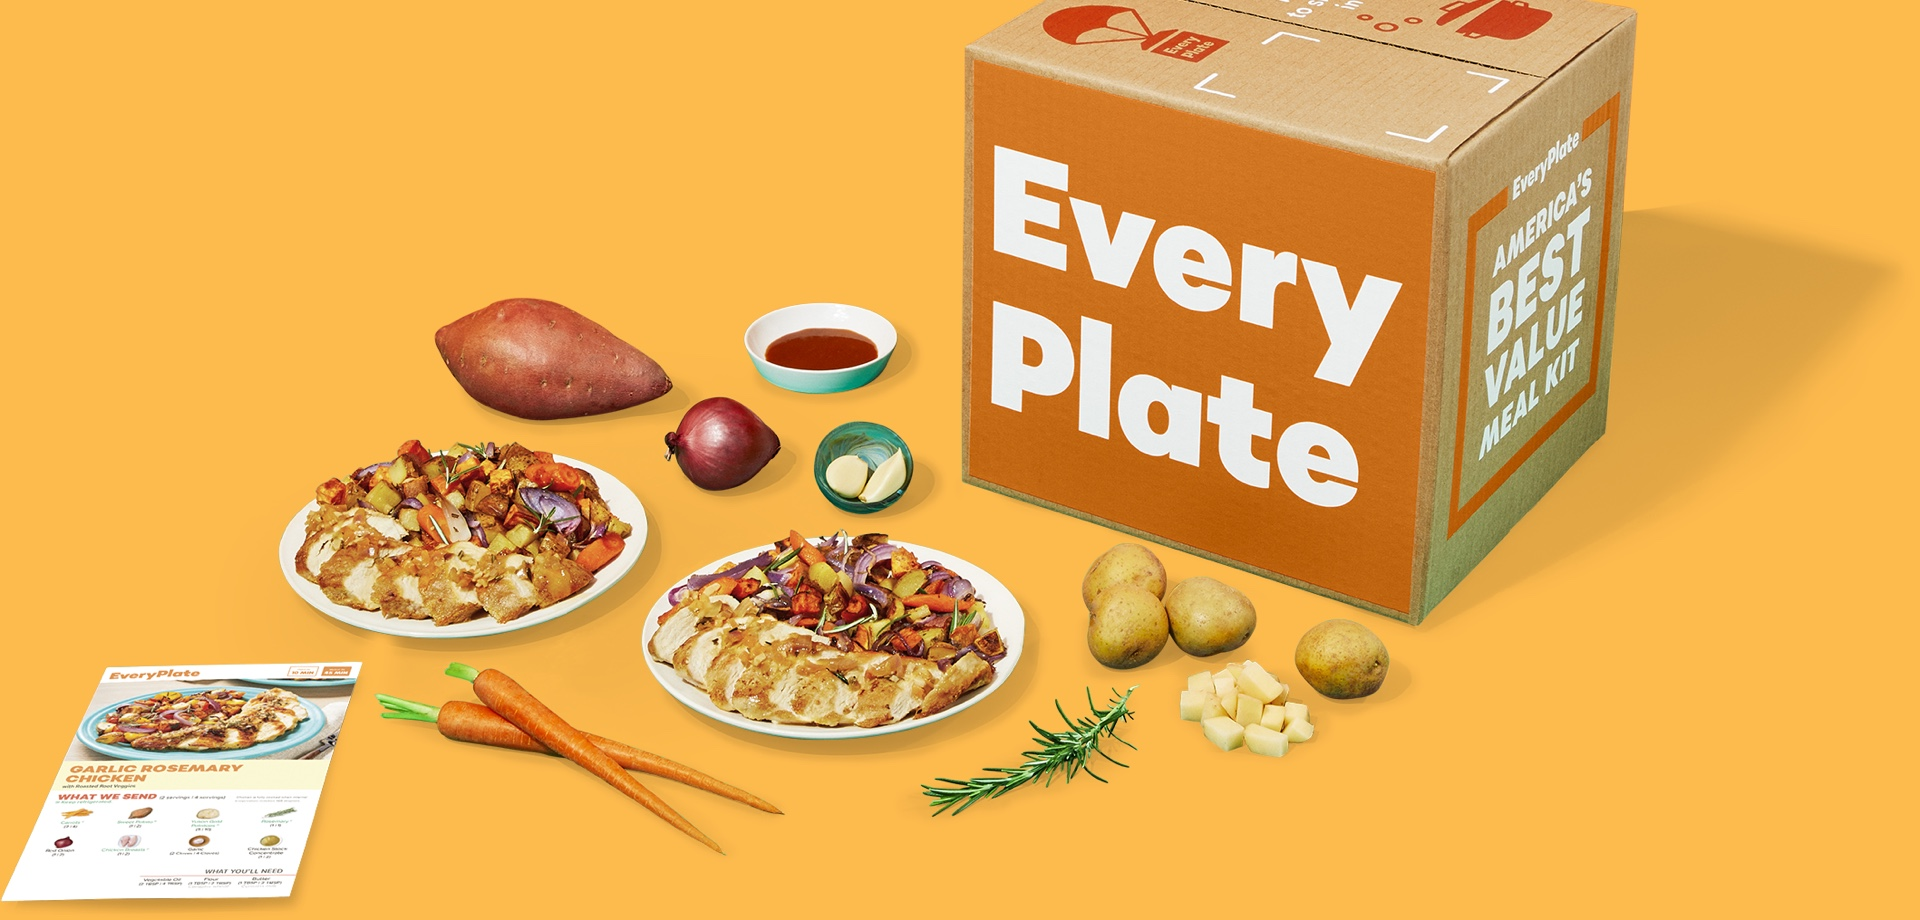 EveryPlate: The Affordable Meal Kit for Everyone